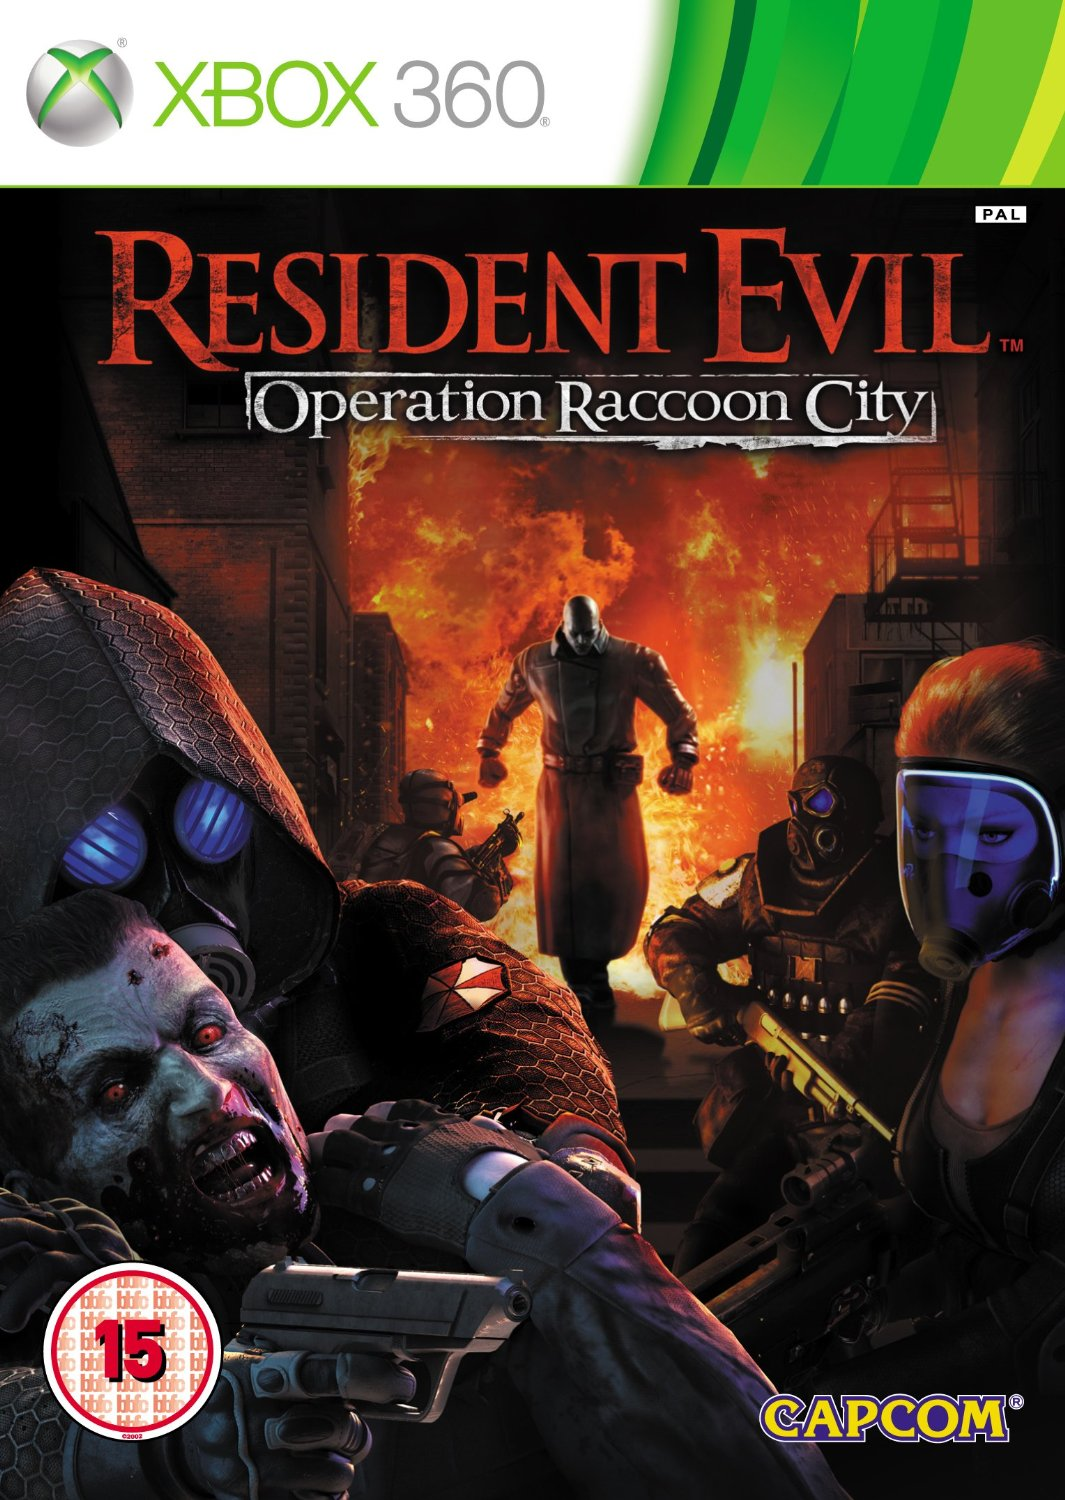 Resident Evil - Operation Raccoon City (XBox 360)